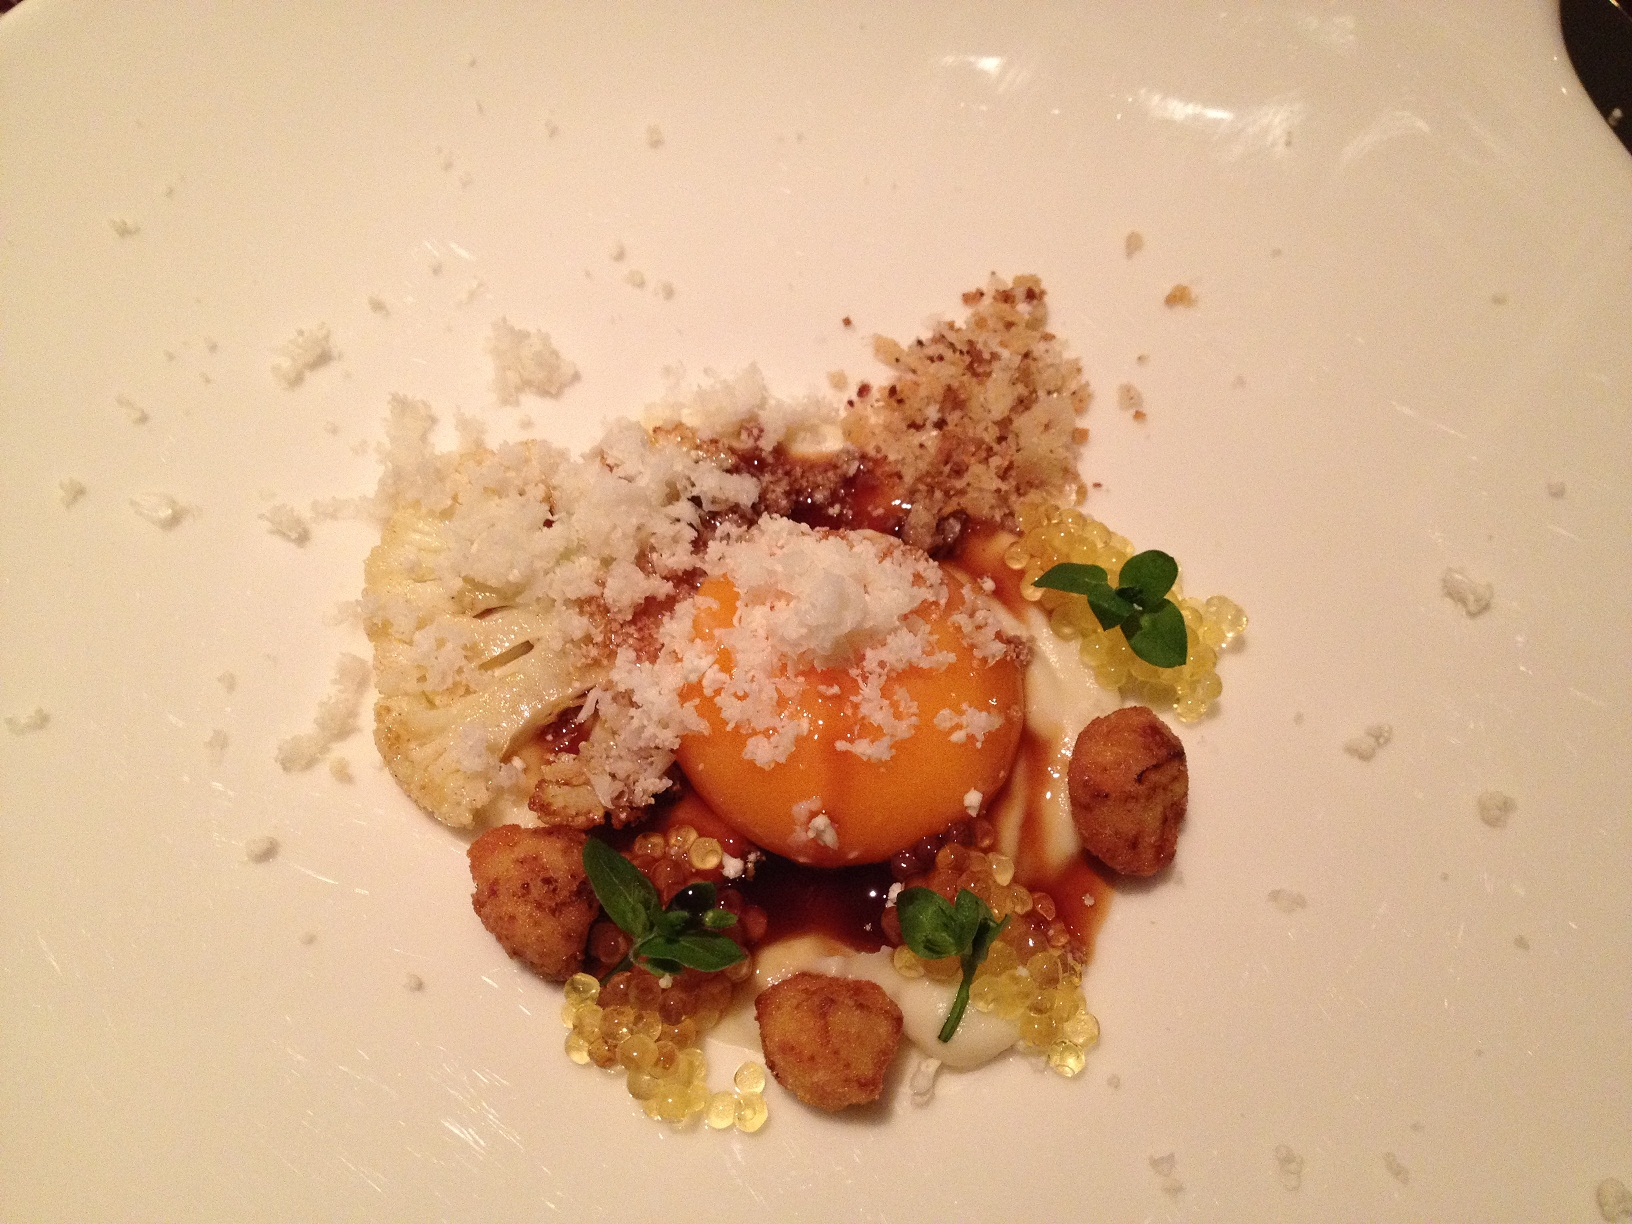 Waxy yolk on cream of cauliflower, with baked and raw cauliflower and char caviar